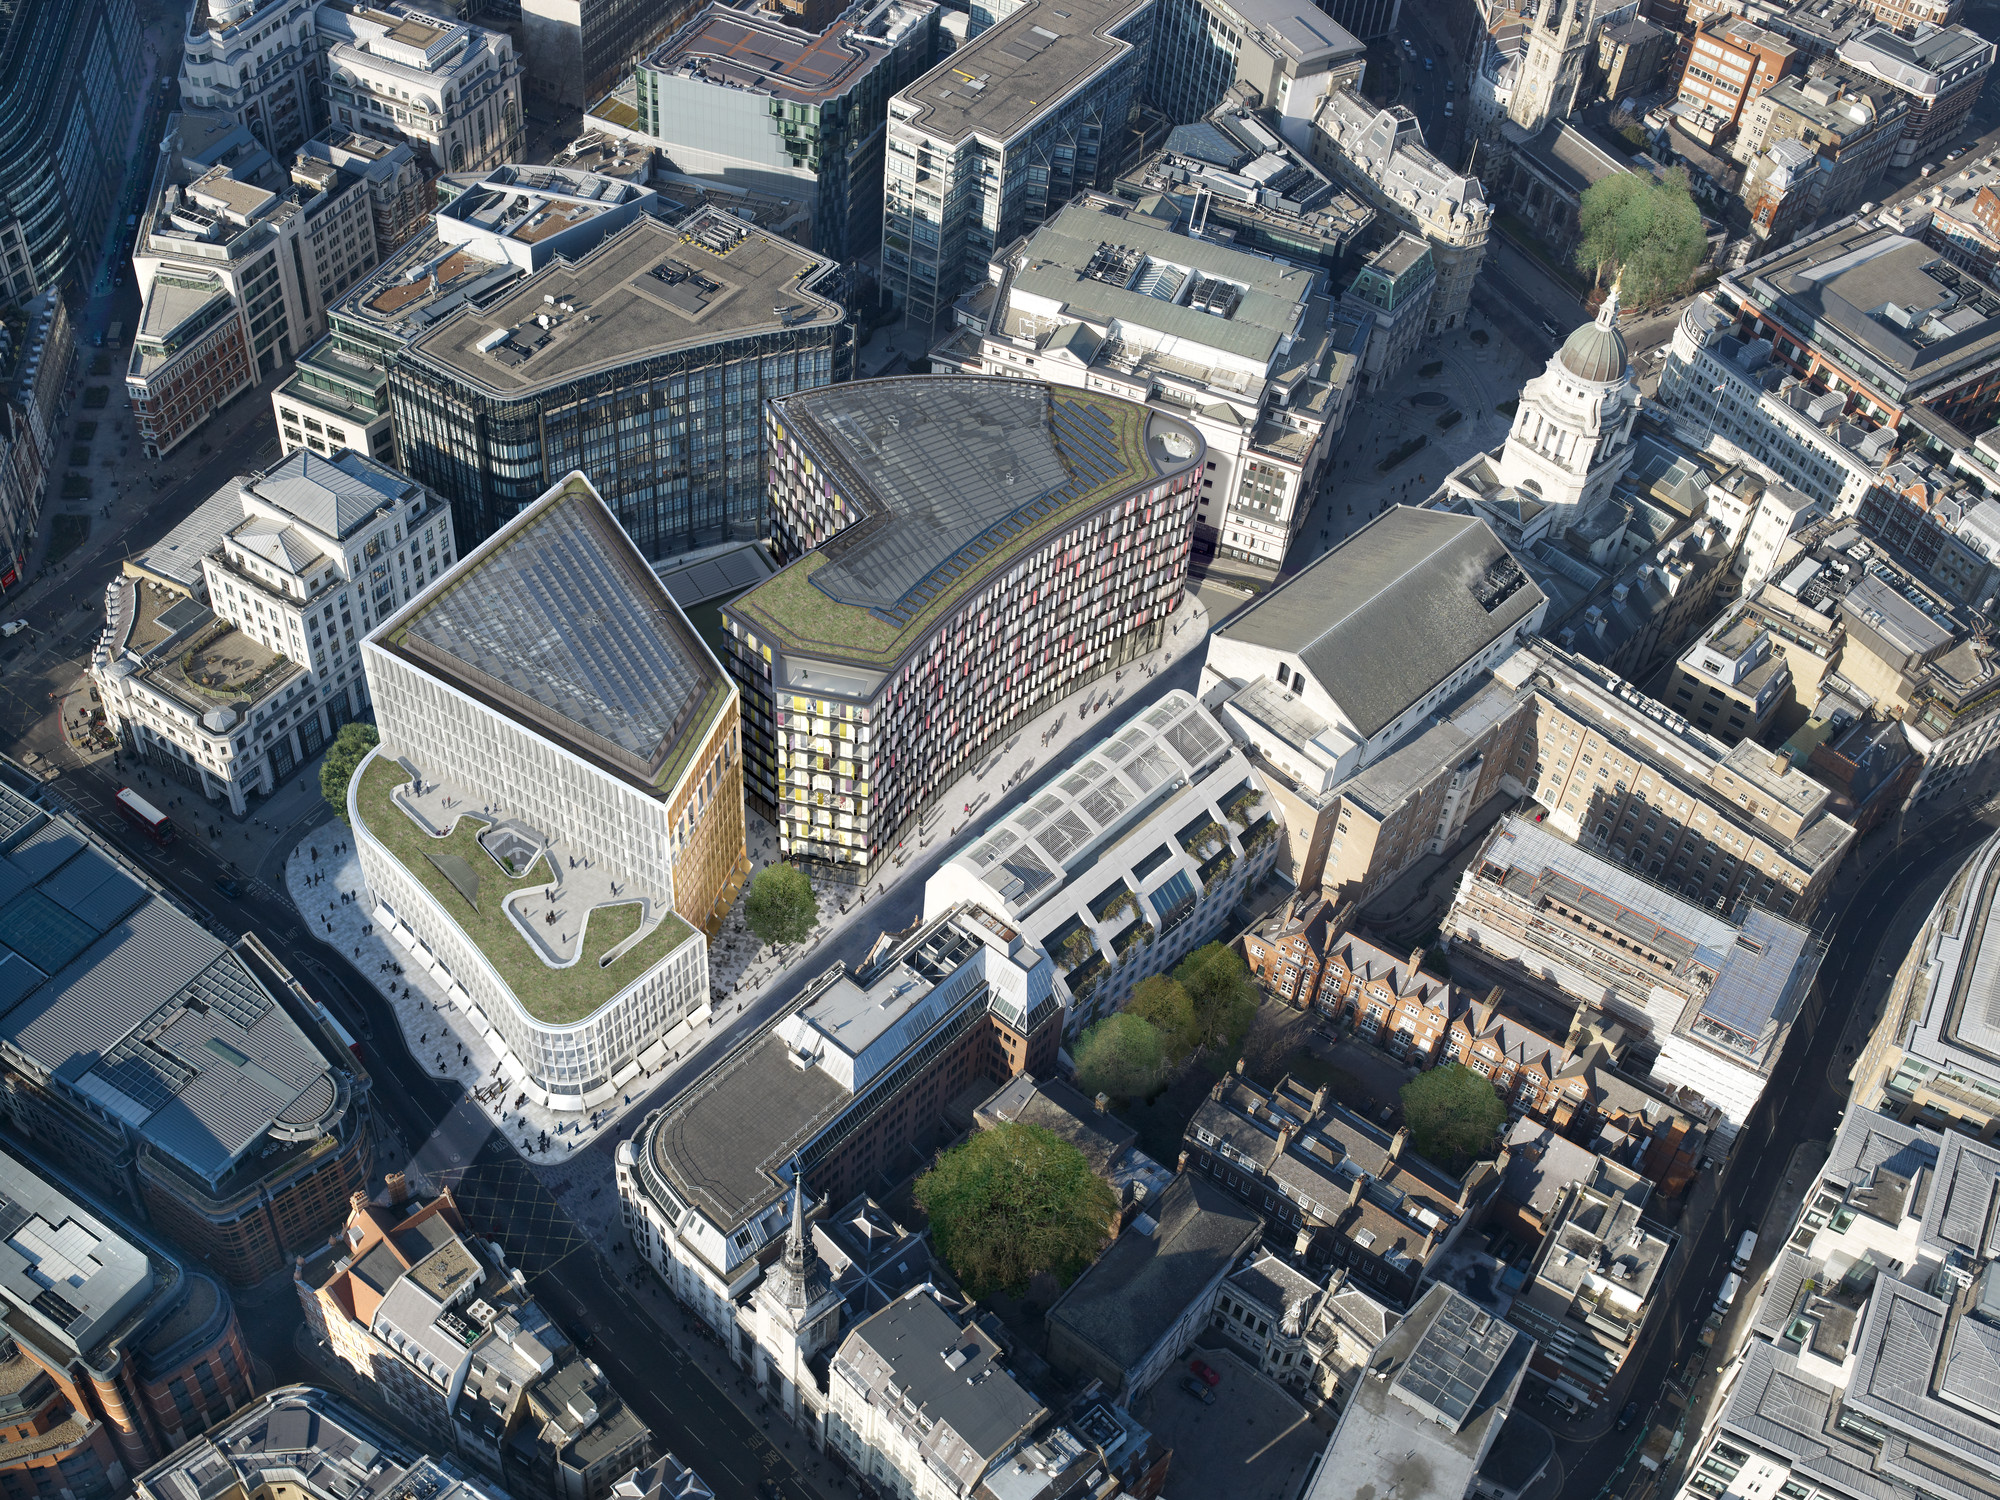 New Ludgate, aerial view. Image Courtesy of Fletcher Priest Architects, Sauerbruch Hutton Architects